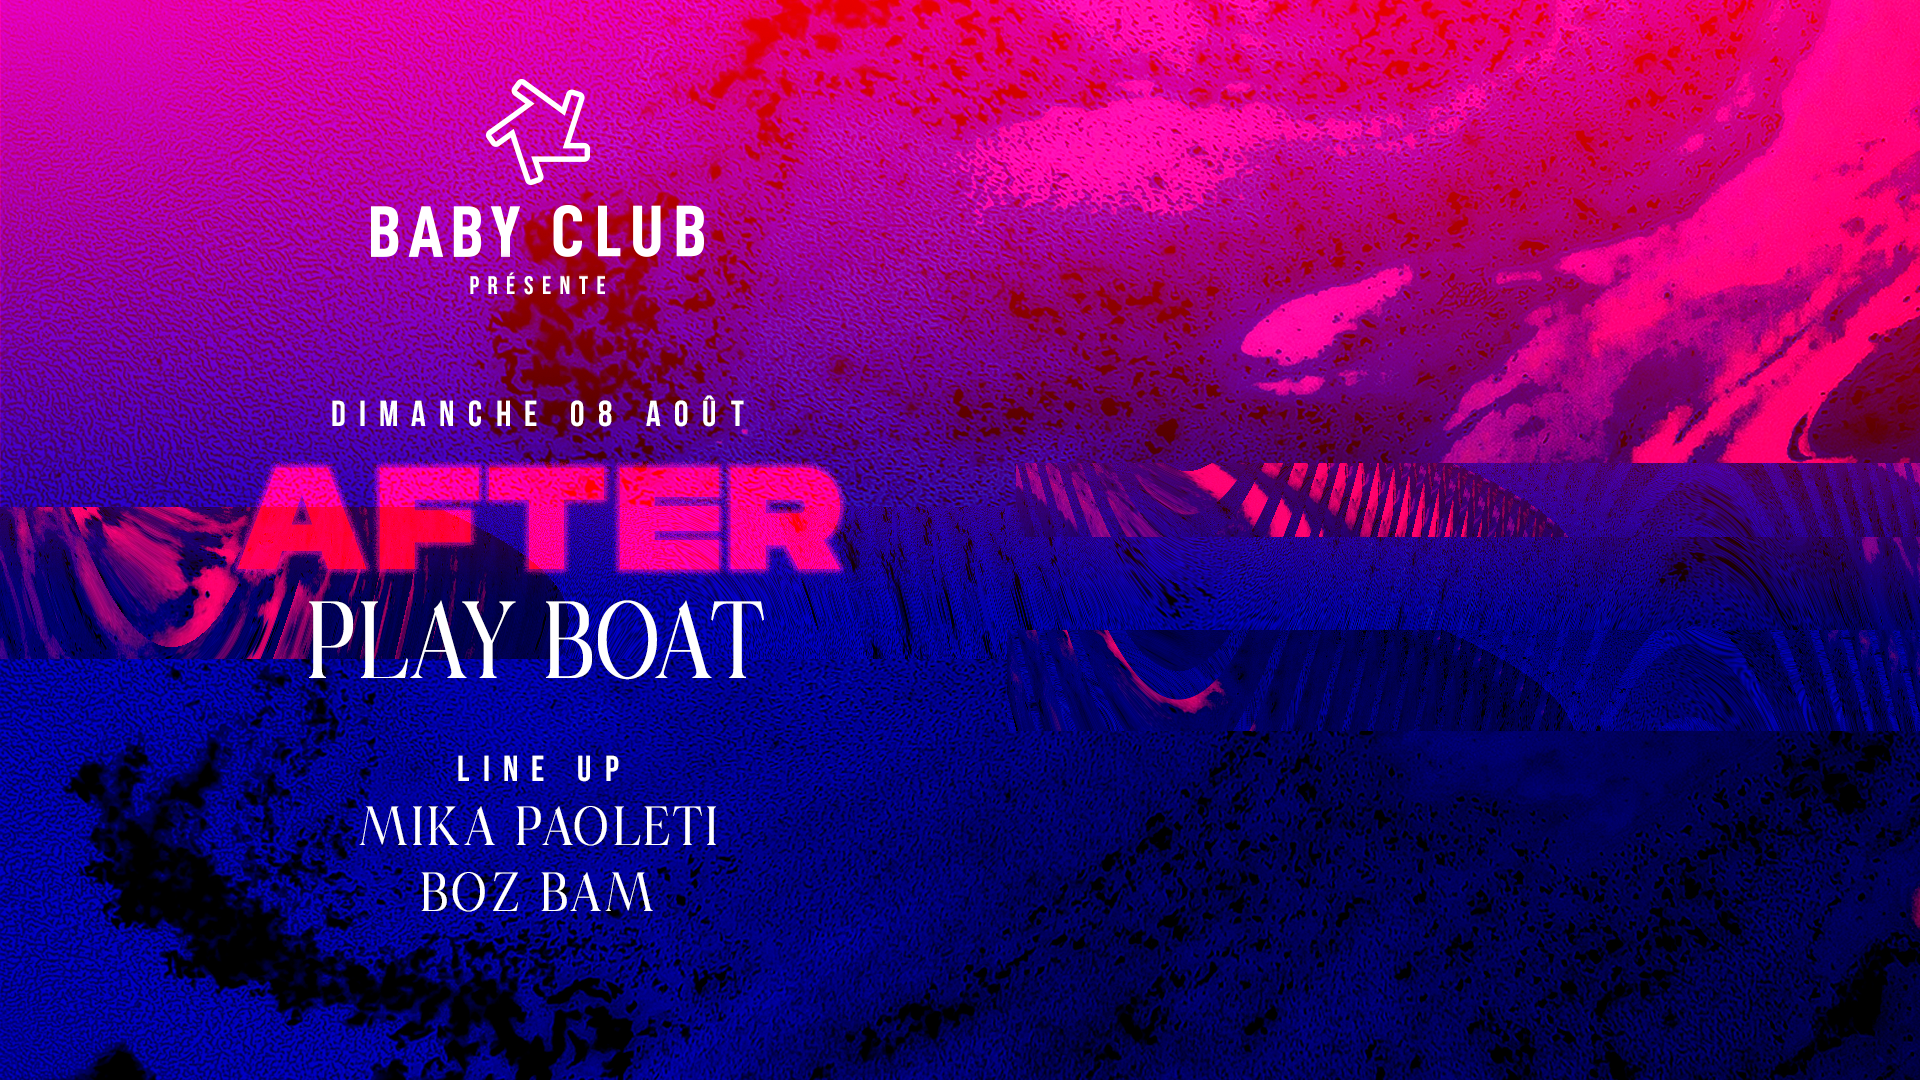 Baby : After play boat